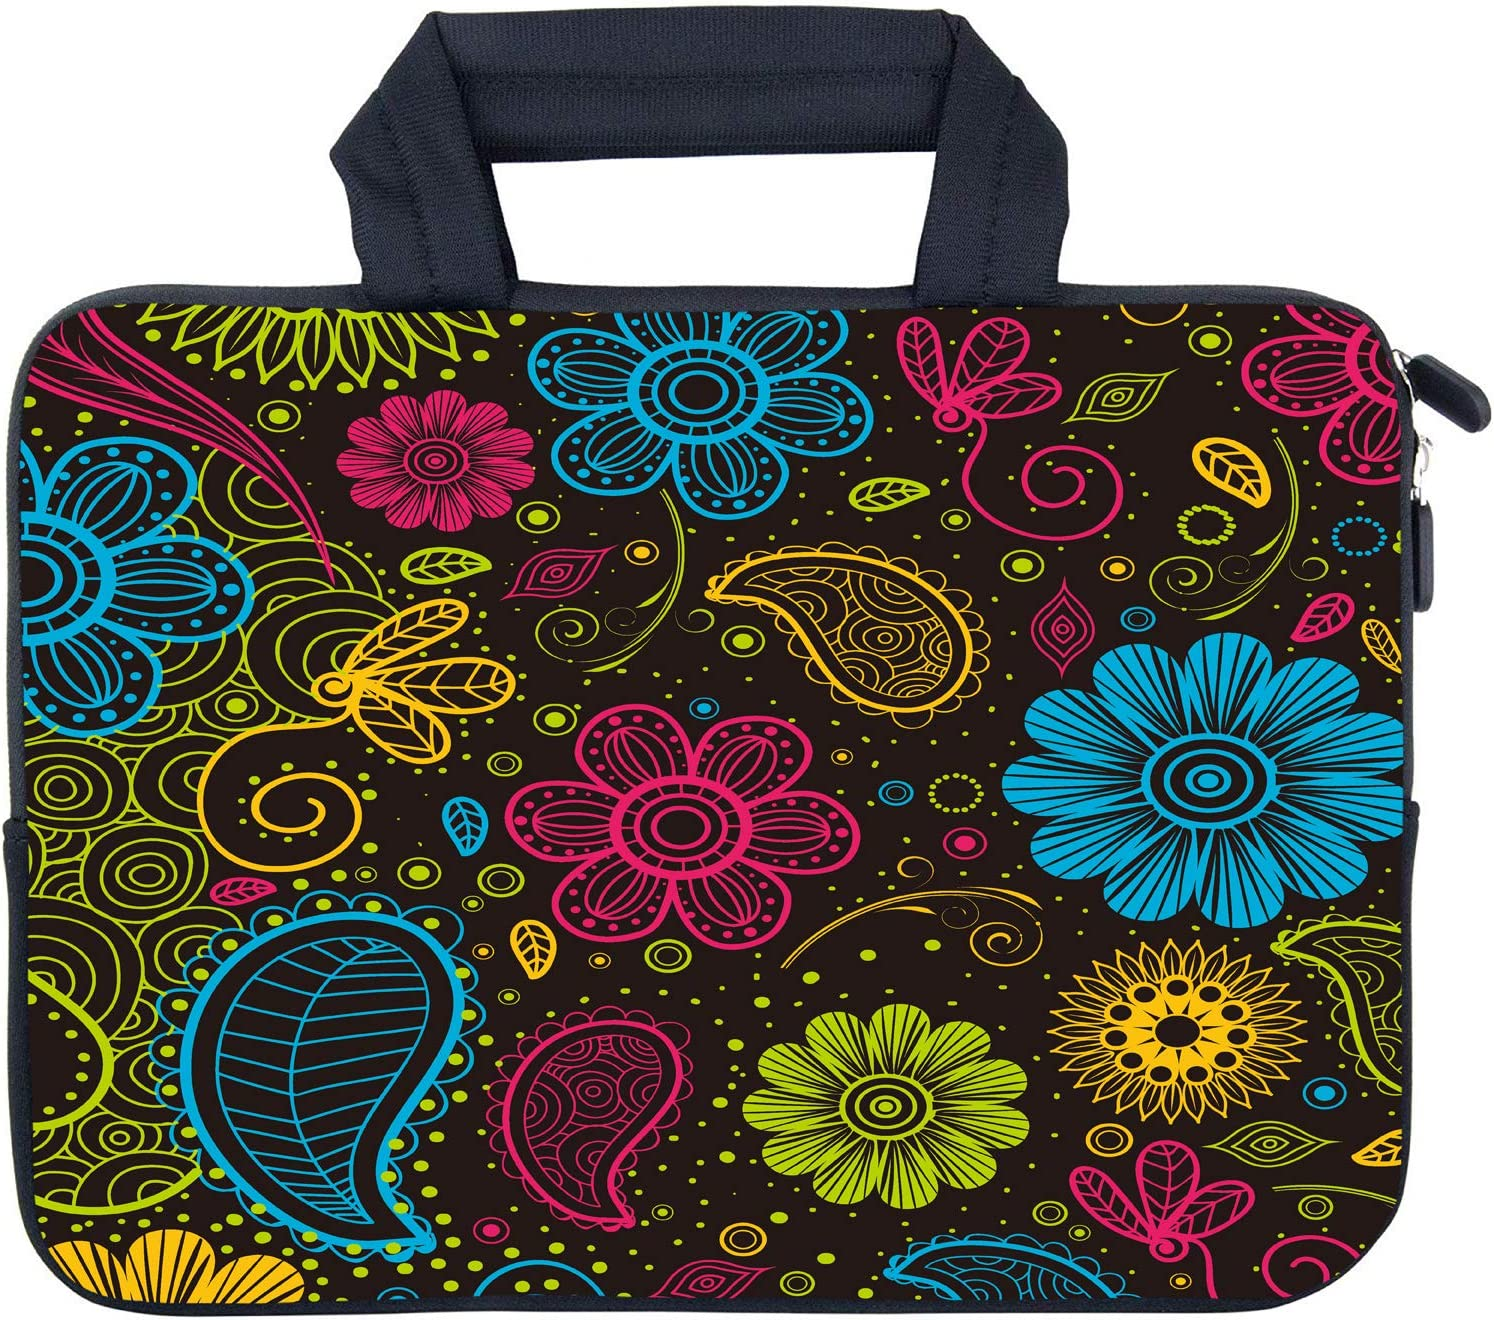 "AMARY 11.6"" 12"" 12.1"" 12.5 inch Laptop Case Chromebook Bags Neoprene Notebook Carrying Pouch Chromebook Sleeve Ultrabook Case Tablet Cover Fit Apple MacBook Air HP DELL Lenovo Asus Samsung (Paisley)"